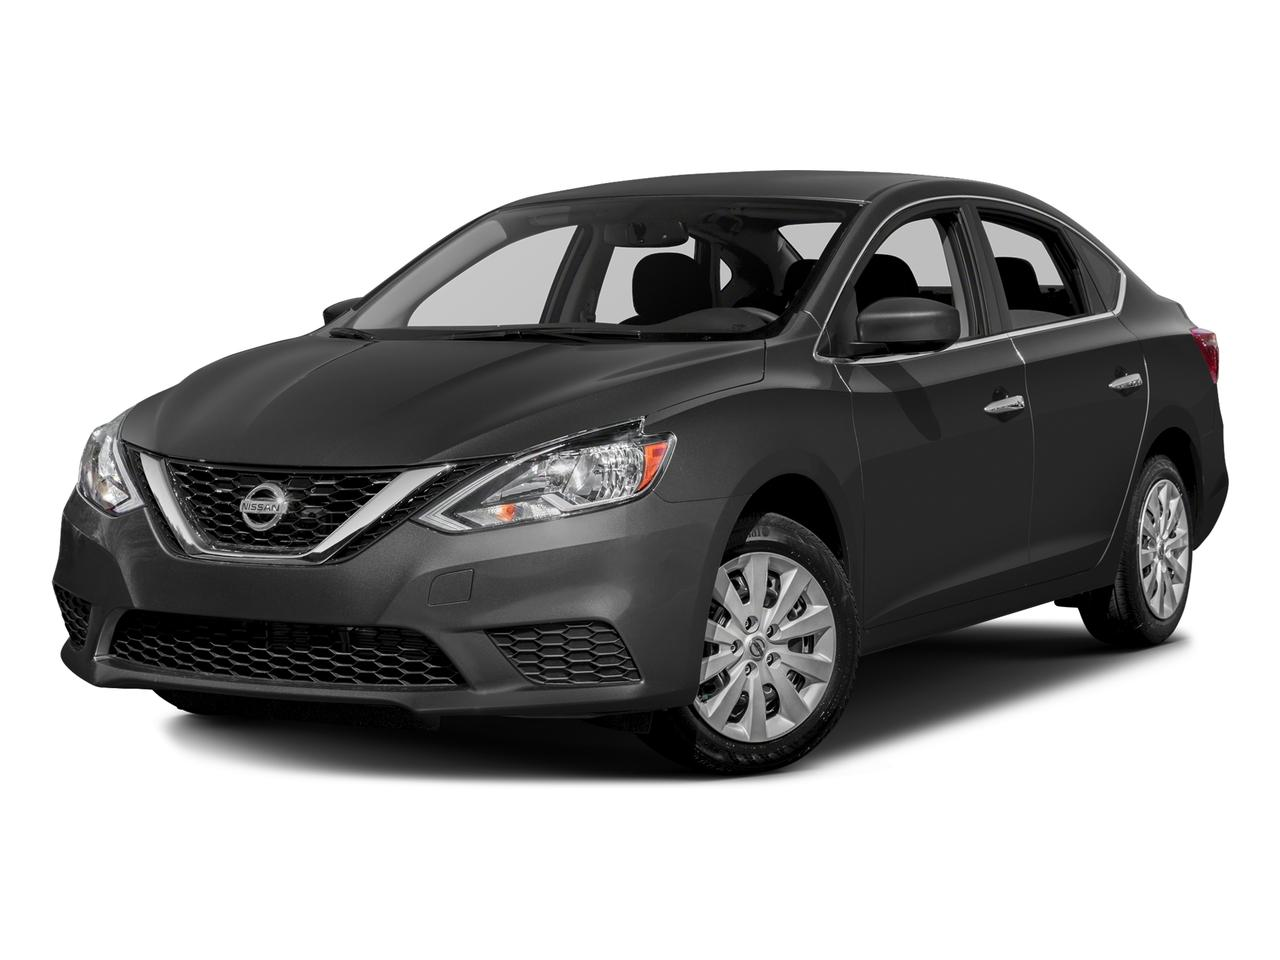 2017 Nissan Sentra Vehicle Photo in Fishers, IN 46038